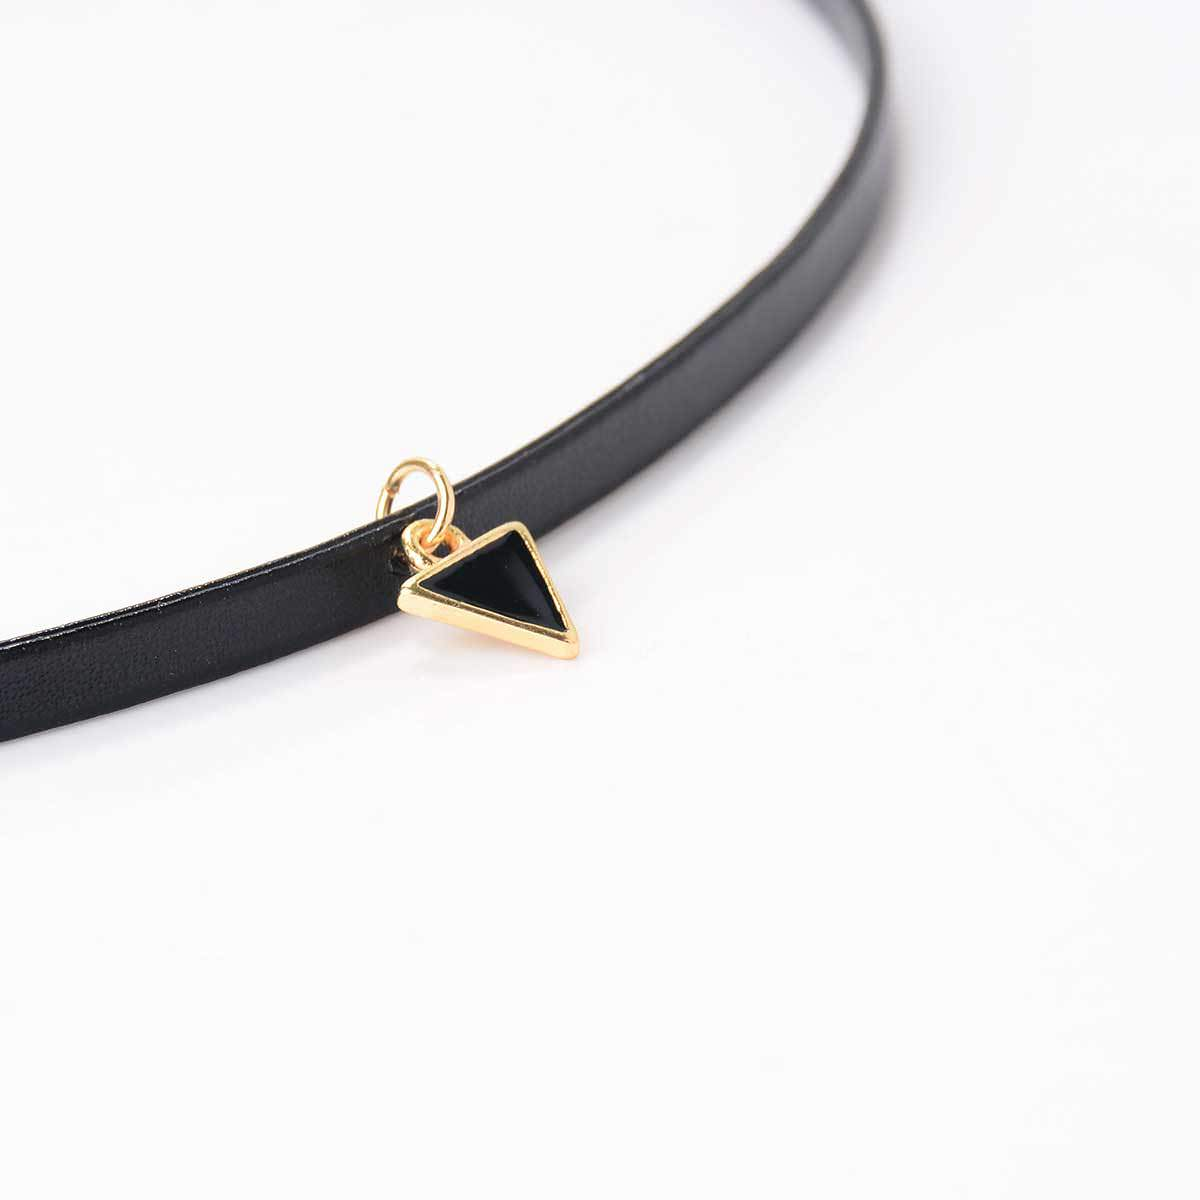 5028-564be8921a2436e62c8dcddc006cf062 Trendy Punk Style Leather Rope Choker Necklace With Triangle Pendant